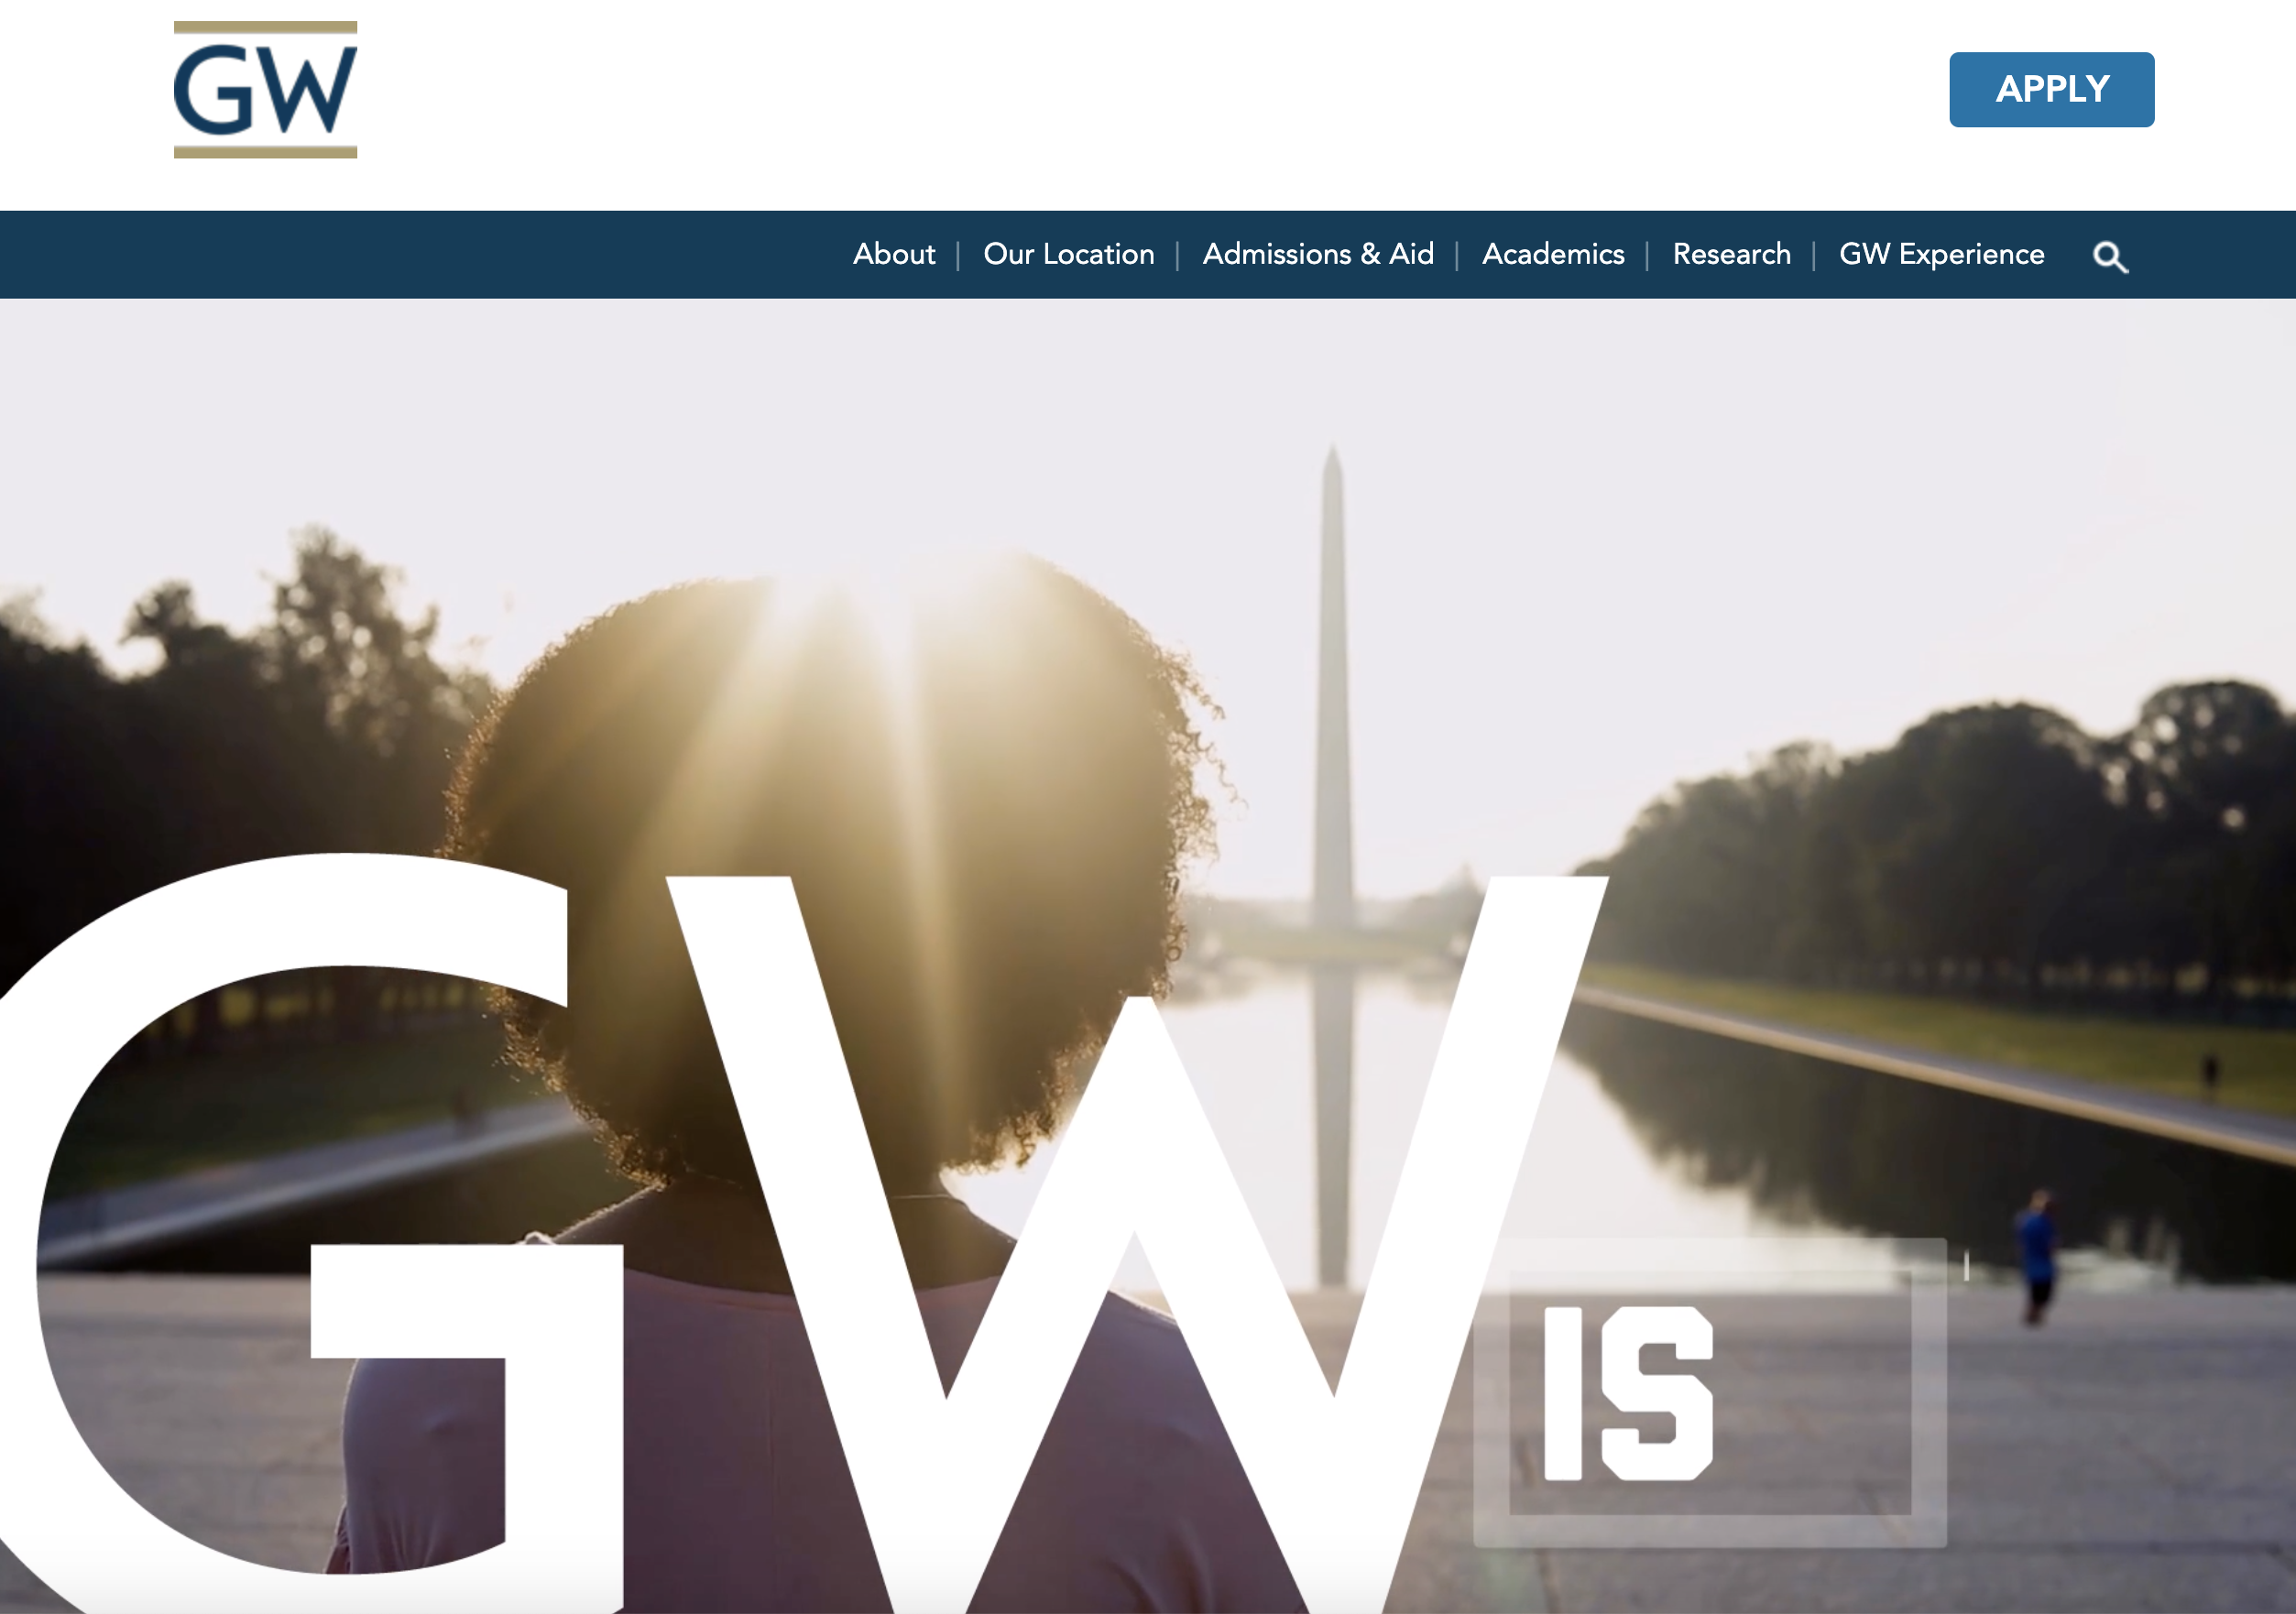 George Washington University website header